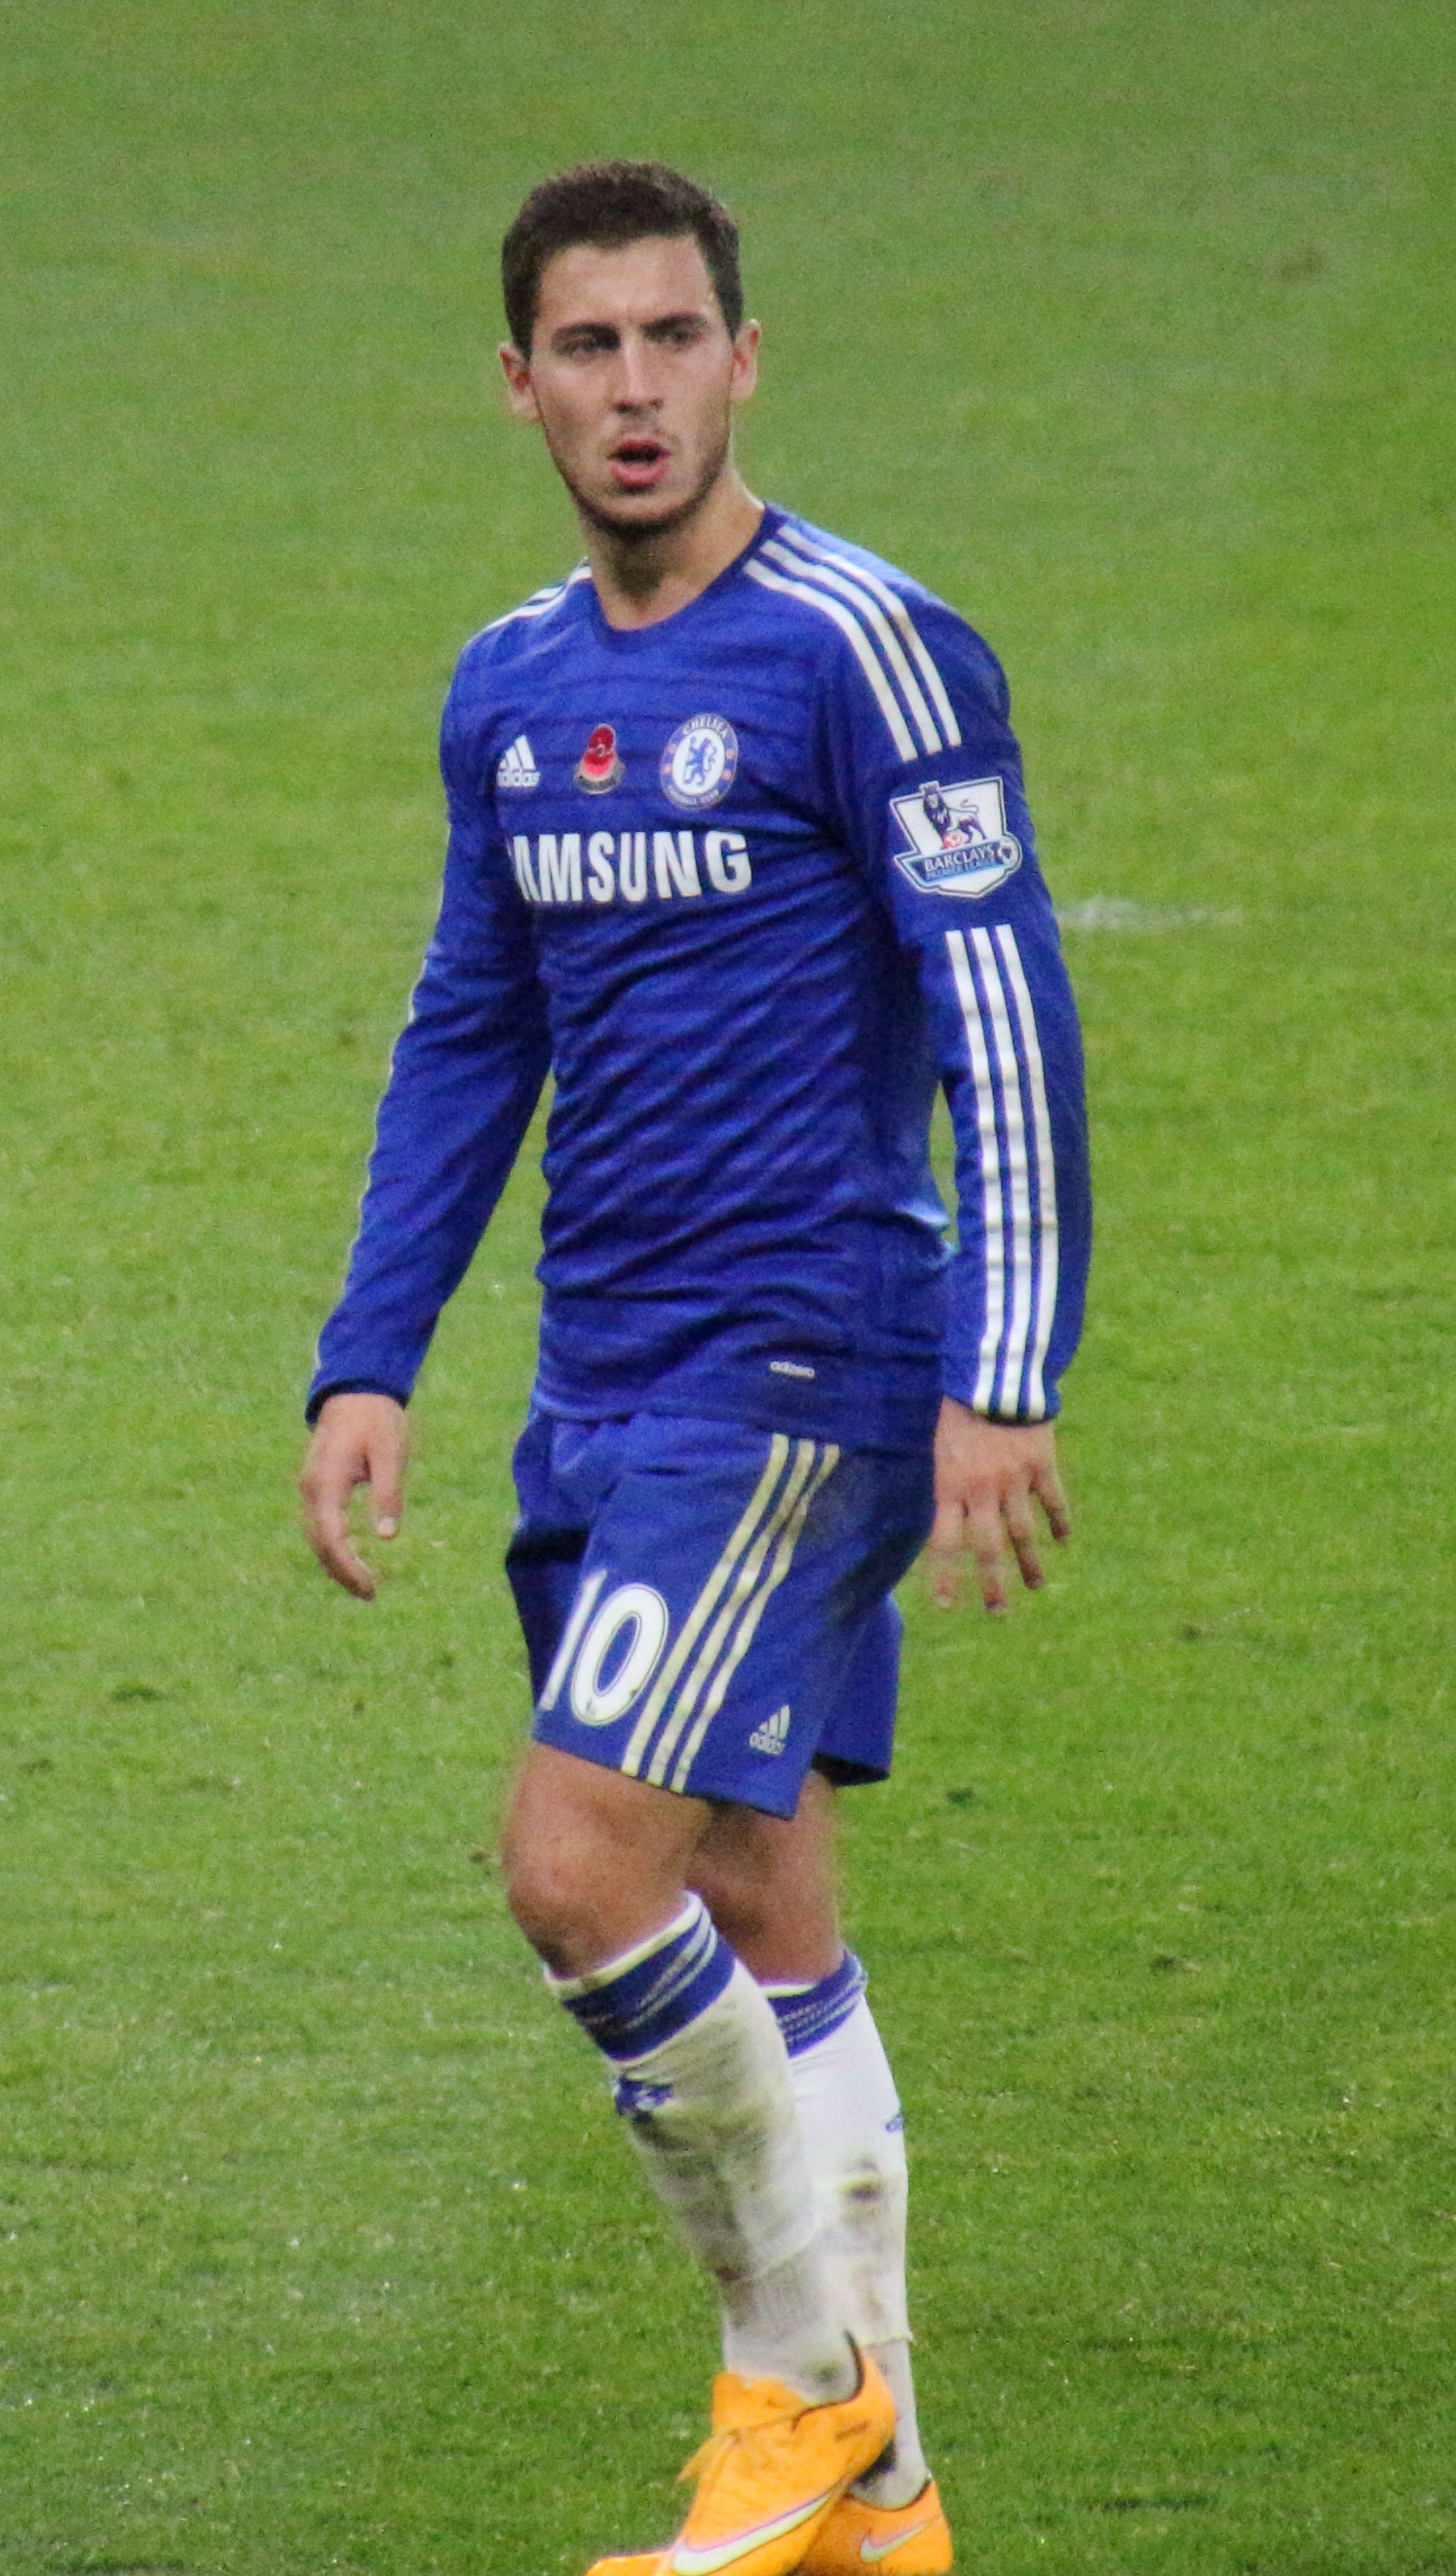 File:Chelsea 2 QPR 1 (15687918092).jpg - Wikimedia Commons